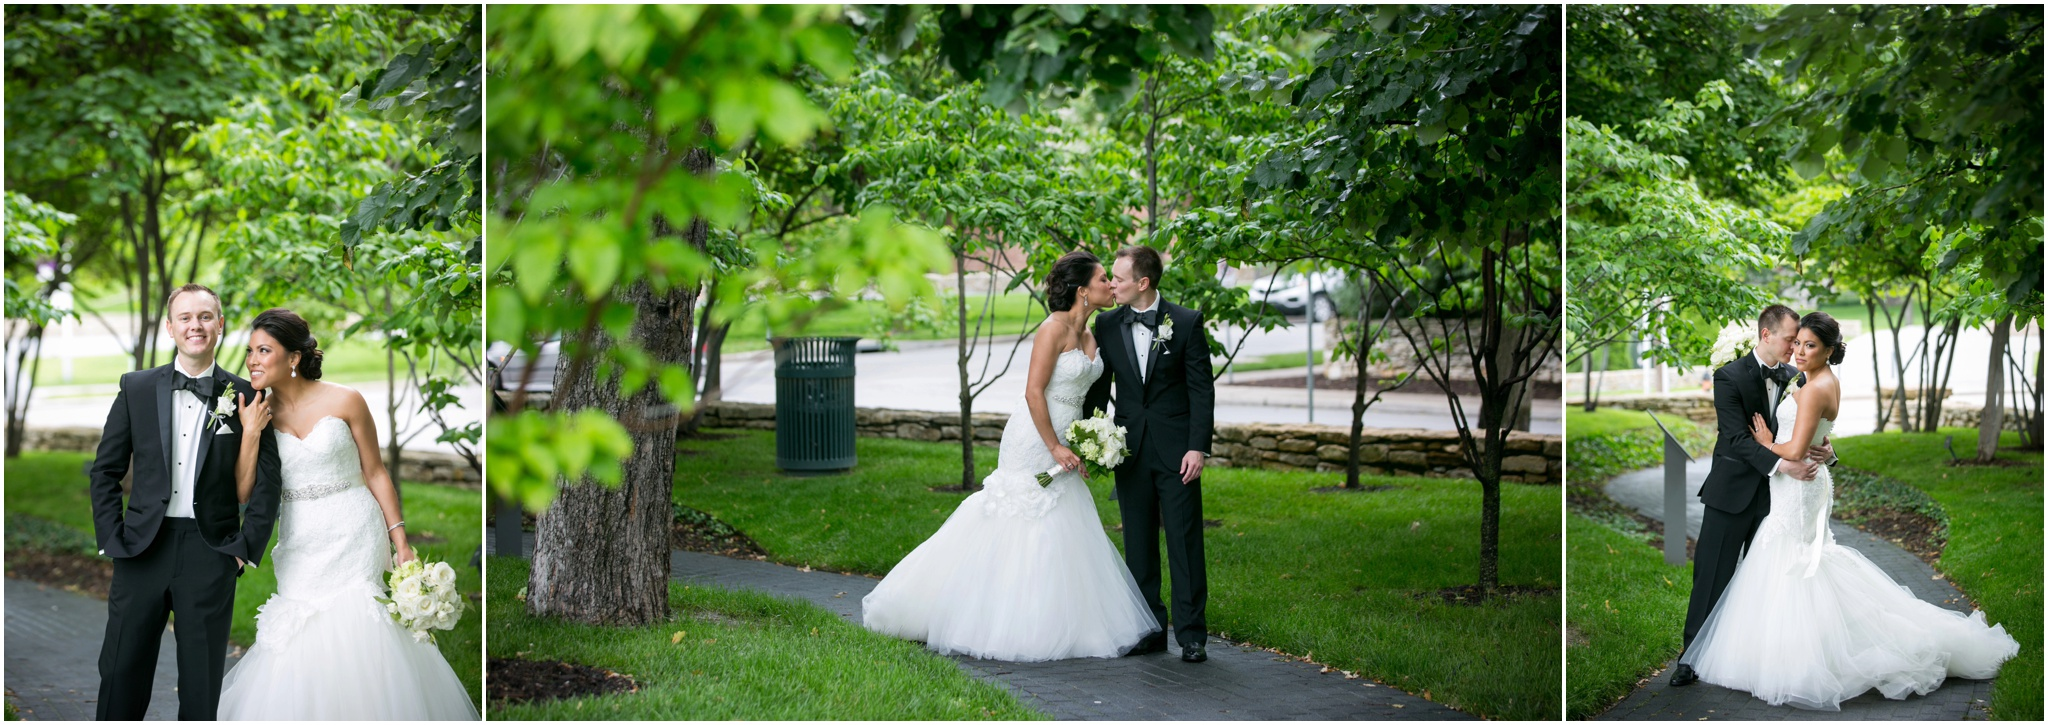 RumelyTractorWedding_KansasCity_0012